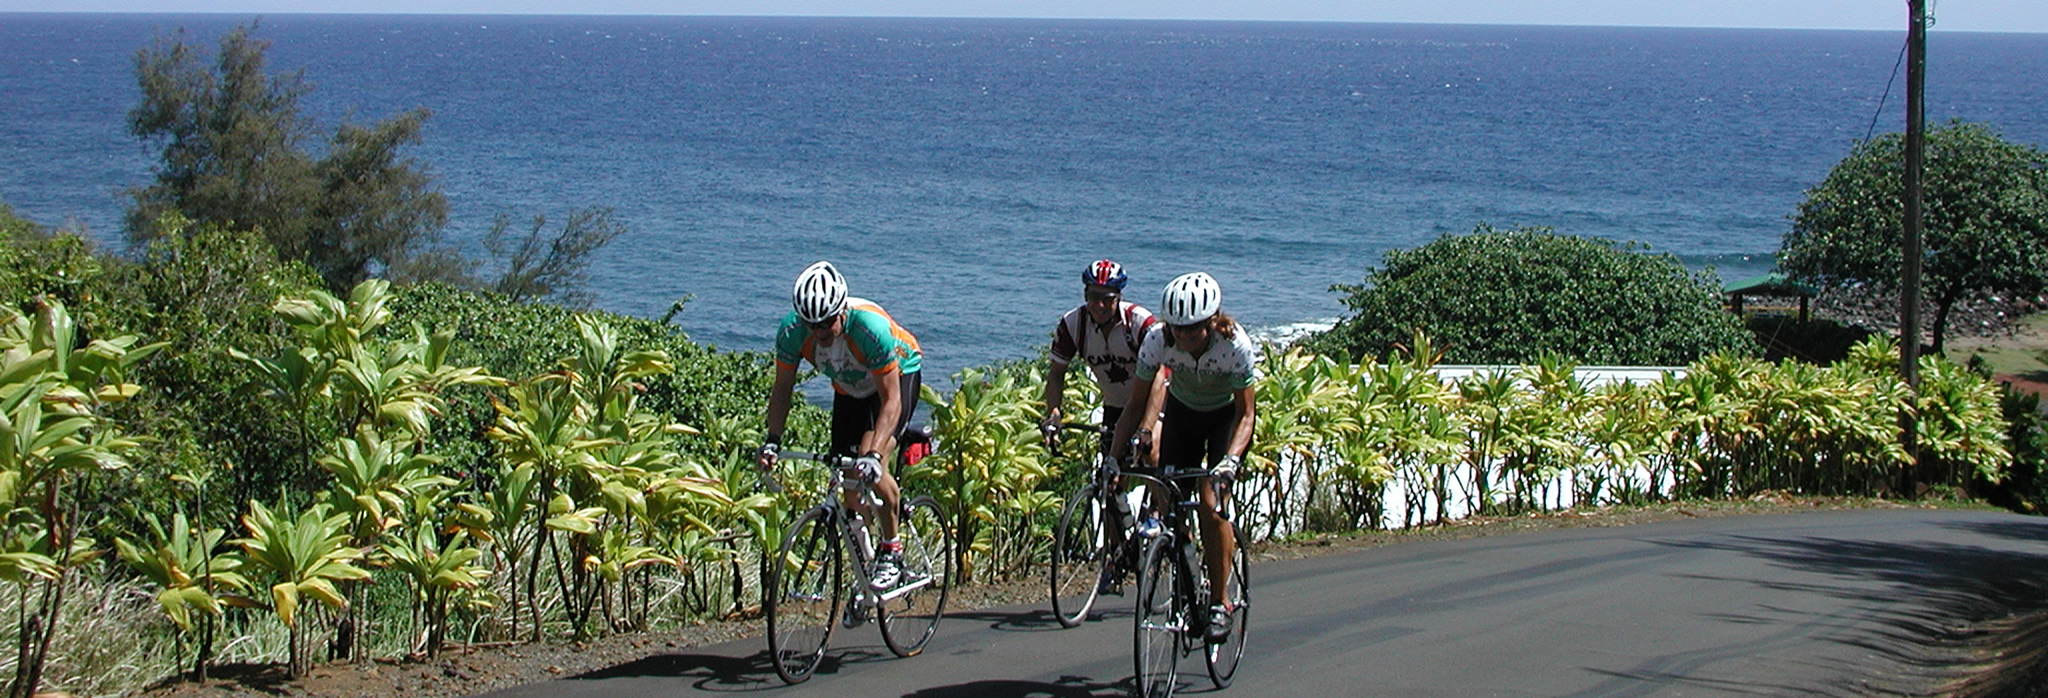 Have you ever enjoy cycling tour?